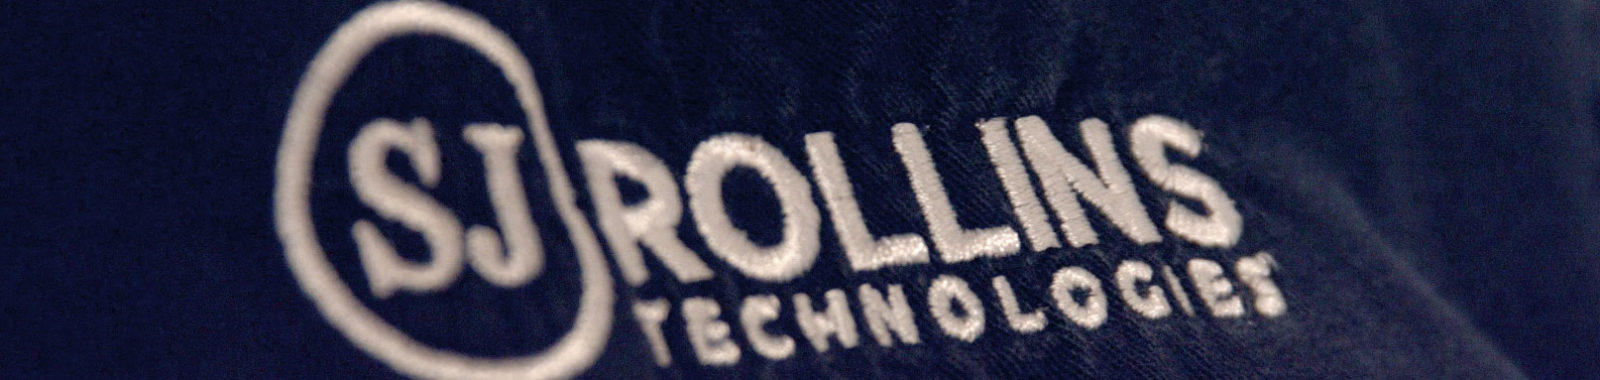 sj rollins technologies logo on shirt